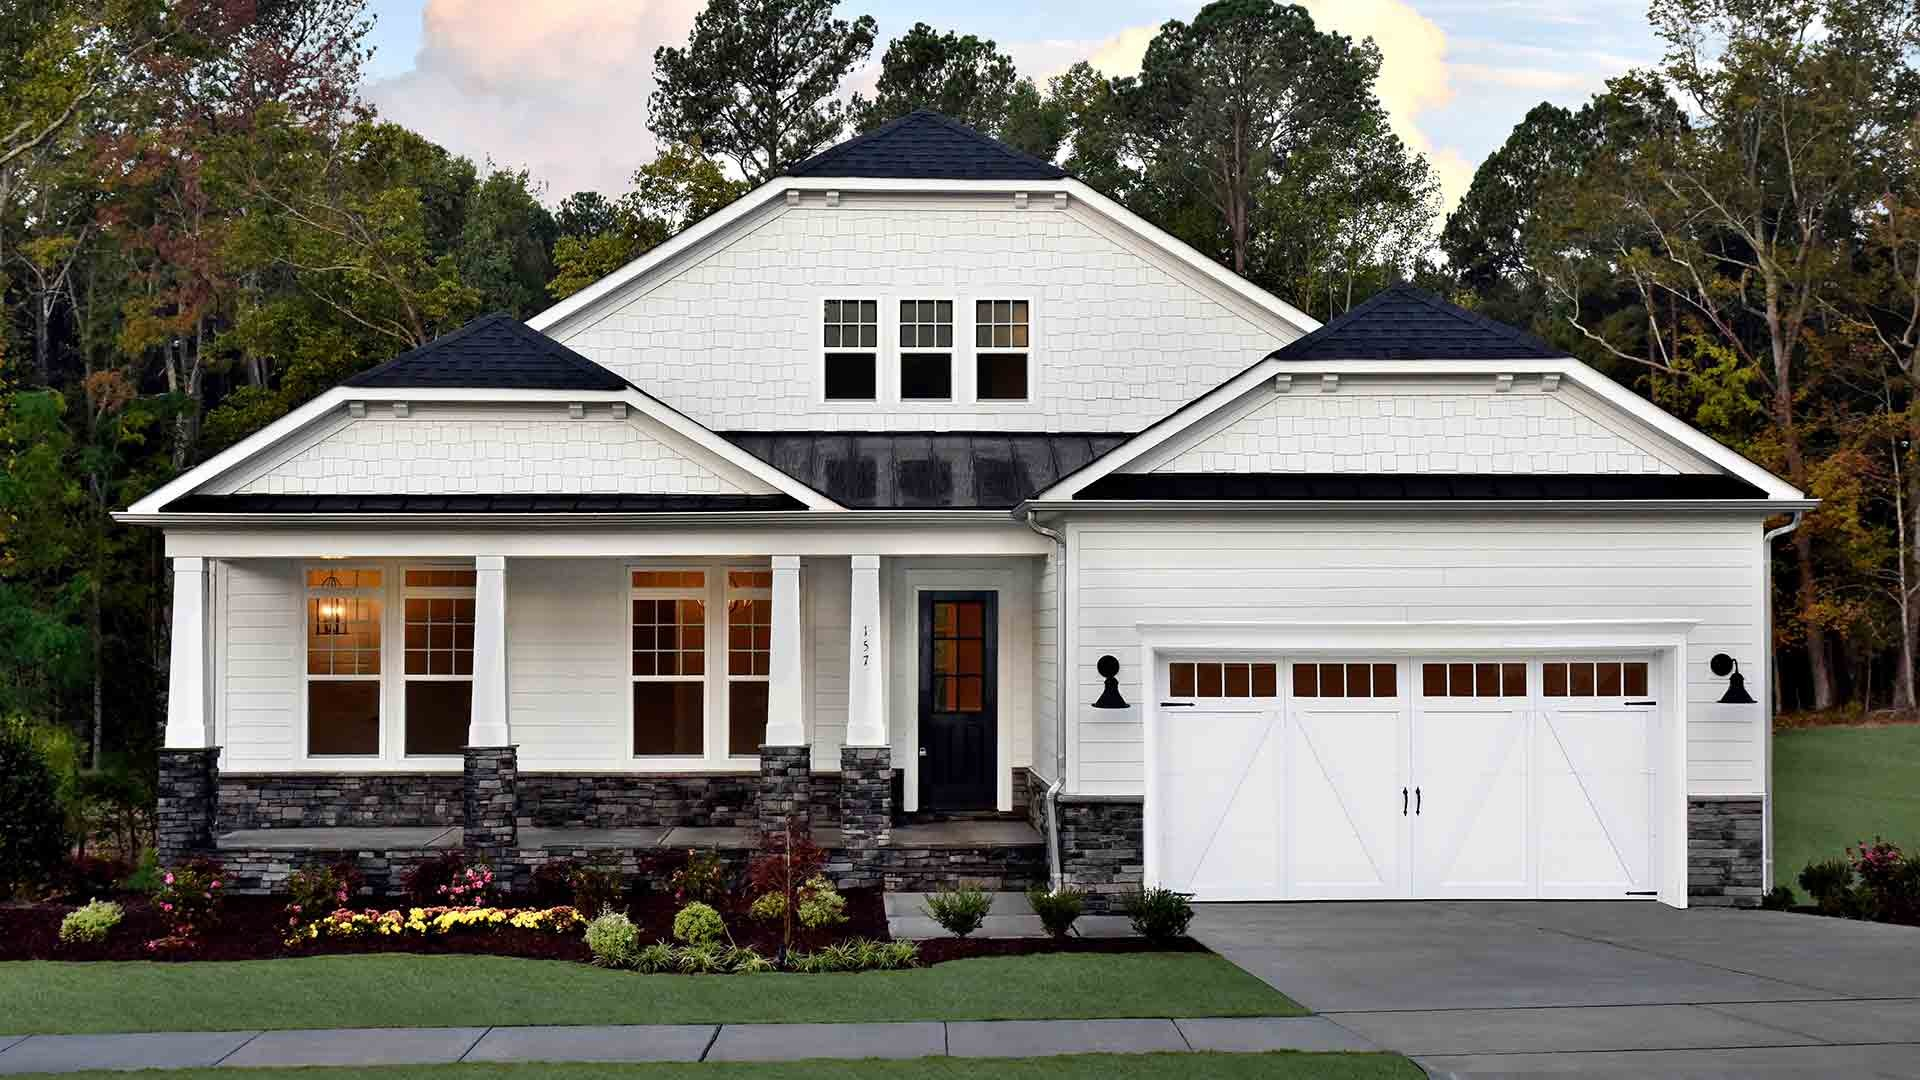 New Homes For Sale In Cary Nc